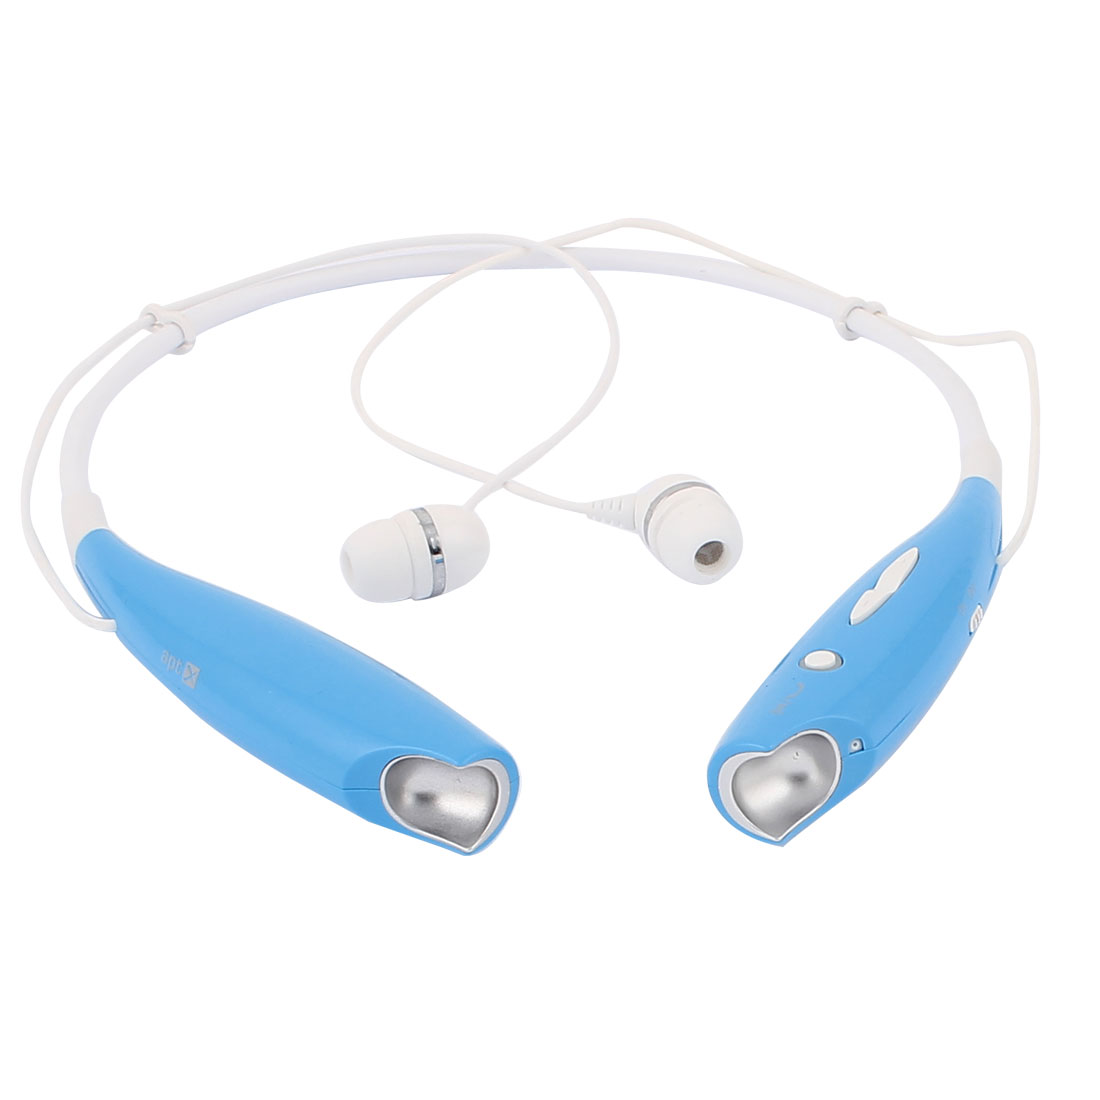 Sports Blue White Plastic Shell Neck Hanging Wireless bluetooth Headset Headphone Earphone w USB Charge Cable for Cell Phone